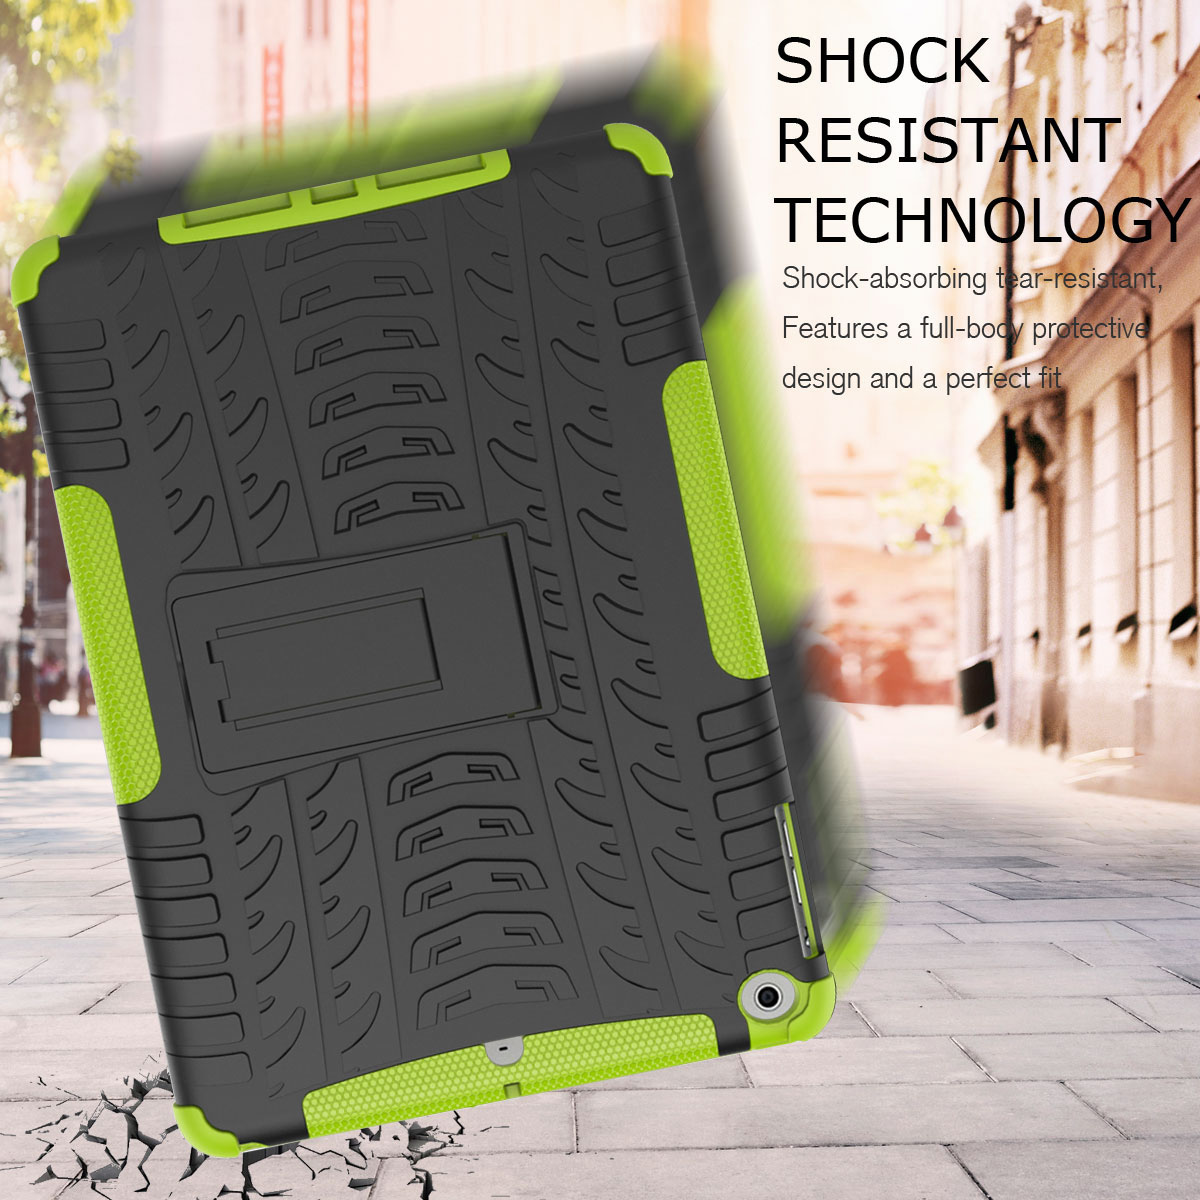 Hybrid-Rubber-Shockproof-Tough-Case-Cover-For-Apple-iPad-9-7-Air-Pro-Mini-1234 thumbnail 36